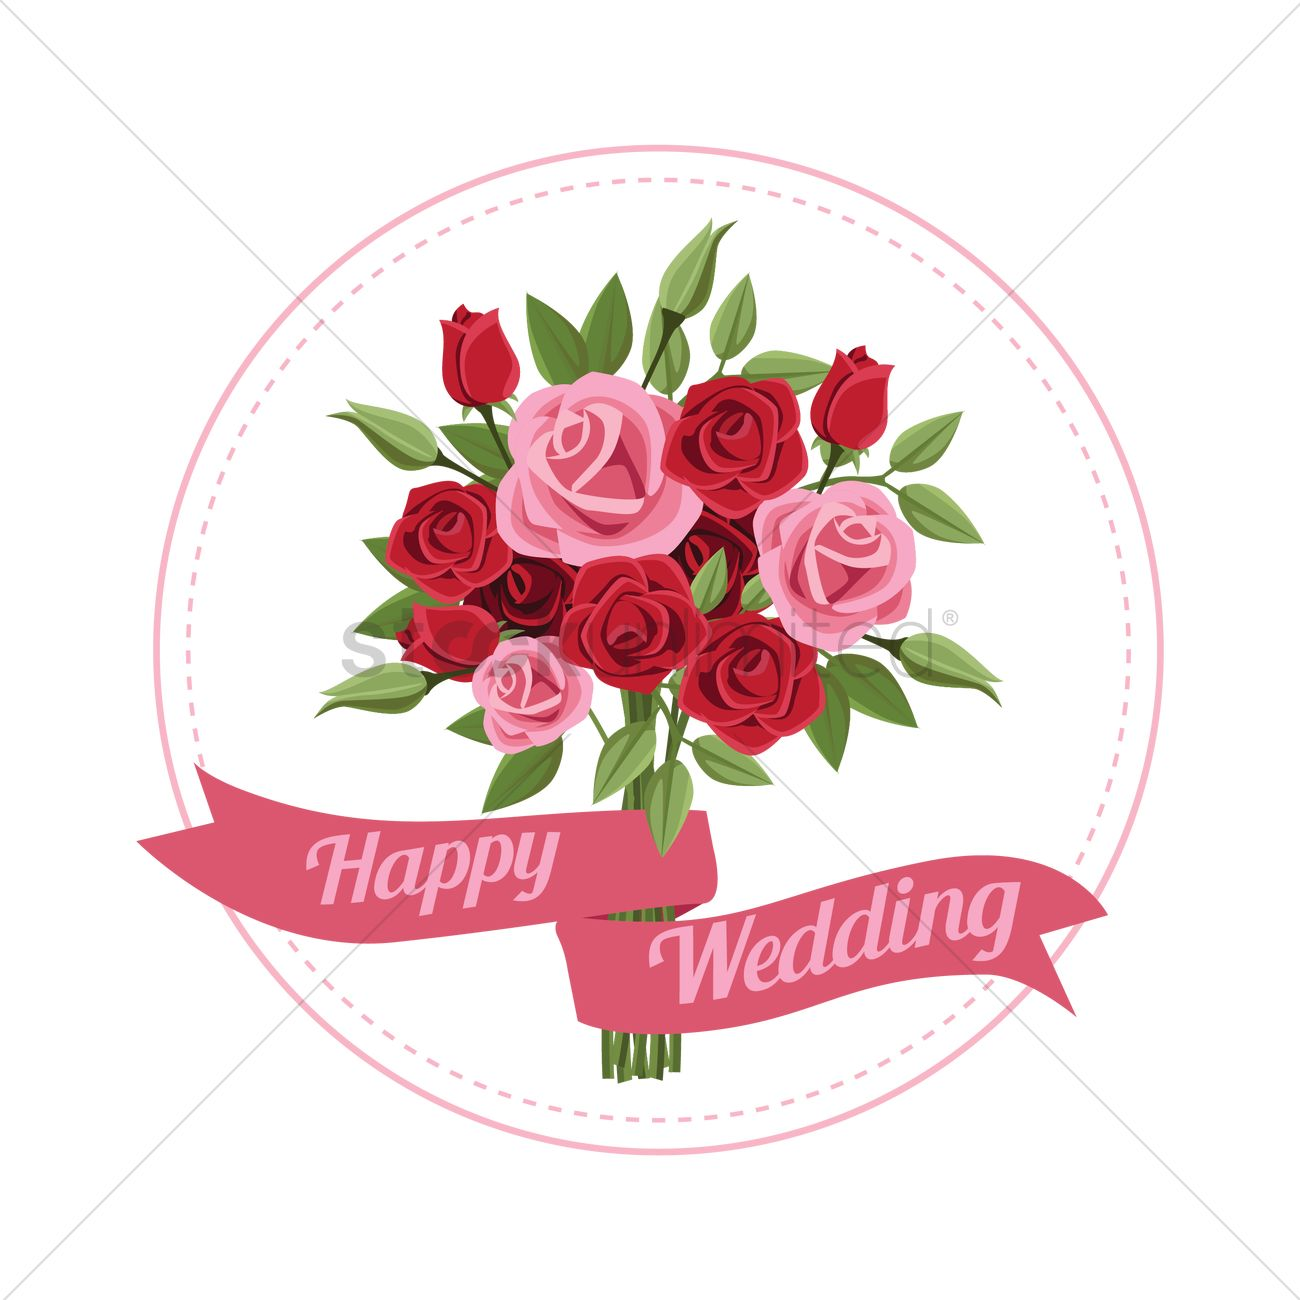 Wedding template design Vector Image - 1986053 | StockUnlimited